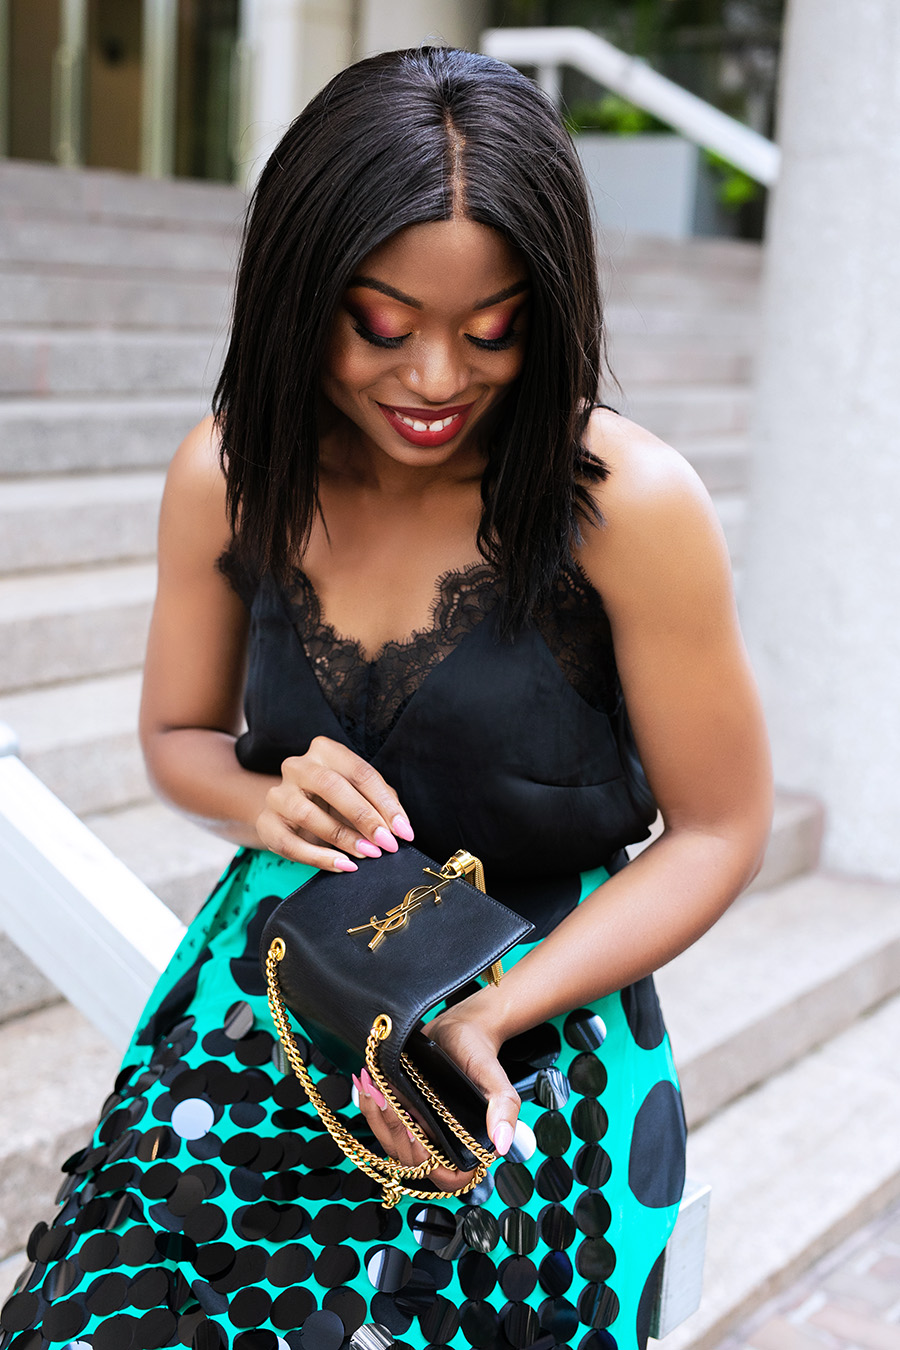 Stella-adewunmi-of-jadore-fashion-lace-cami-ysl-kate